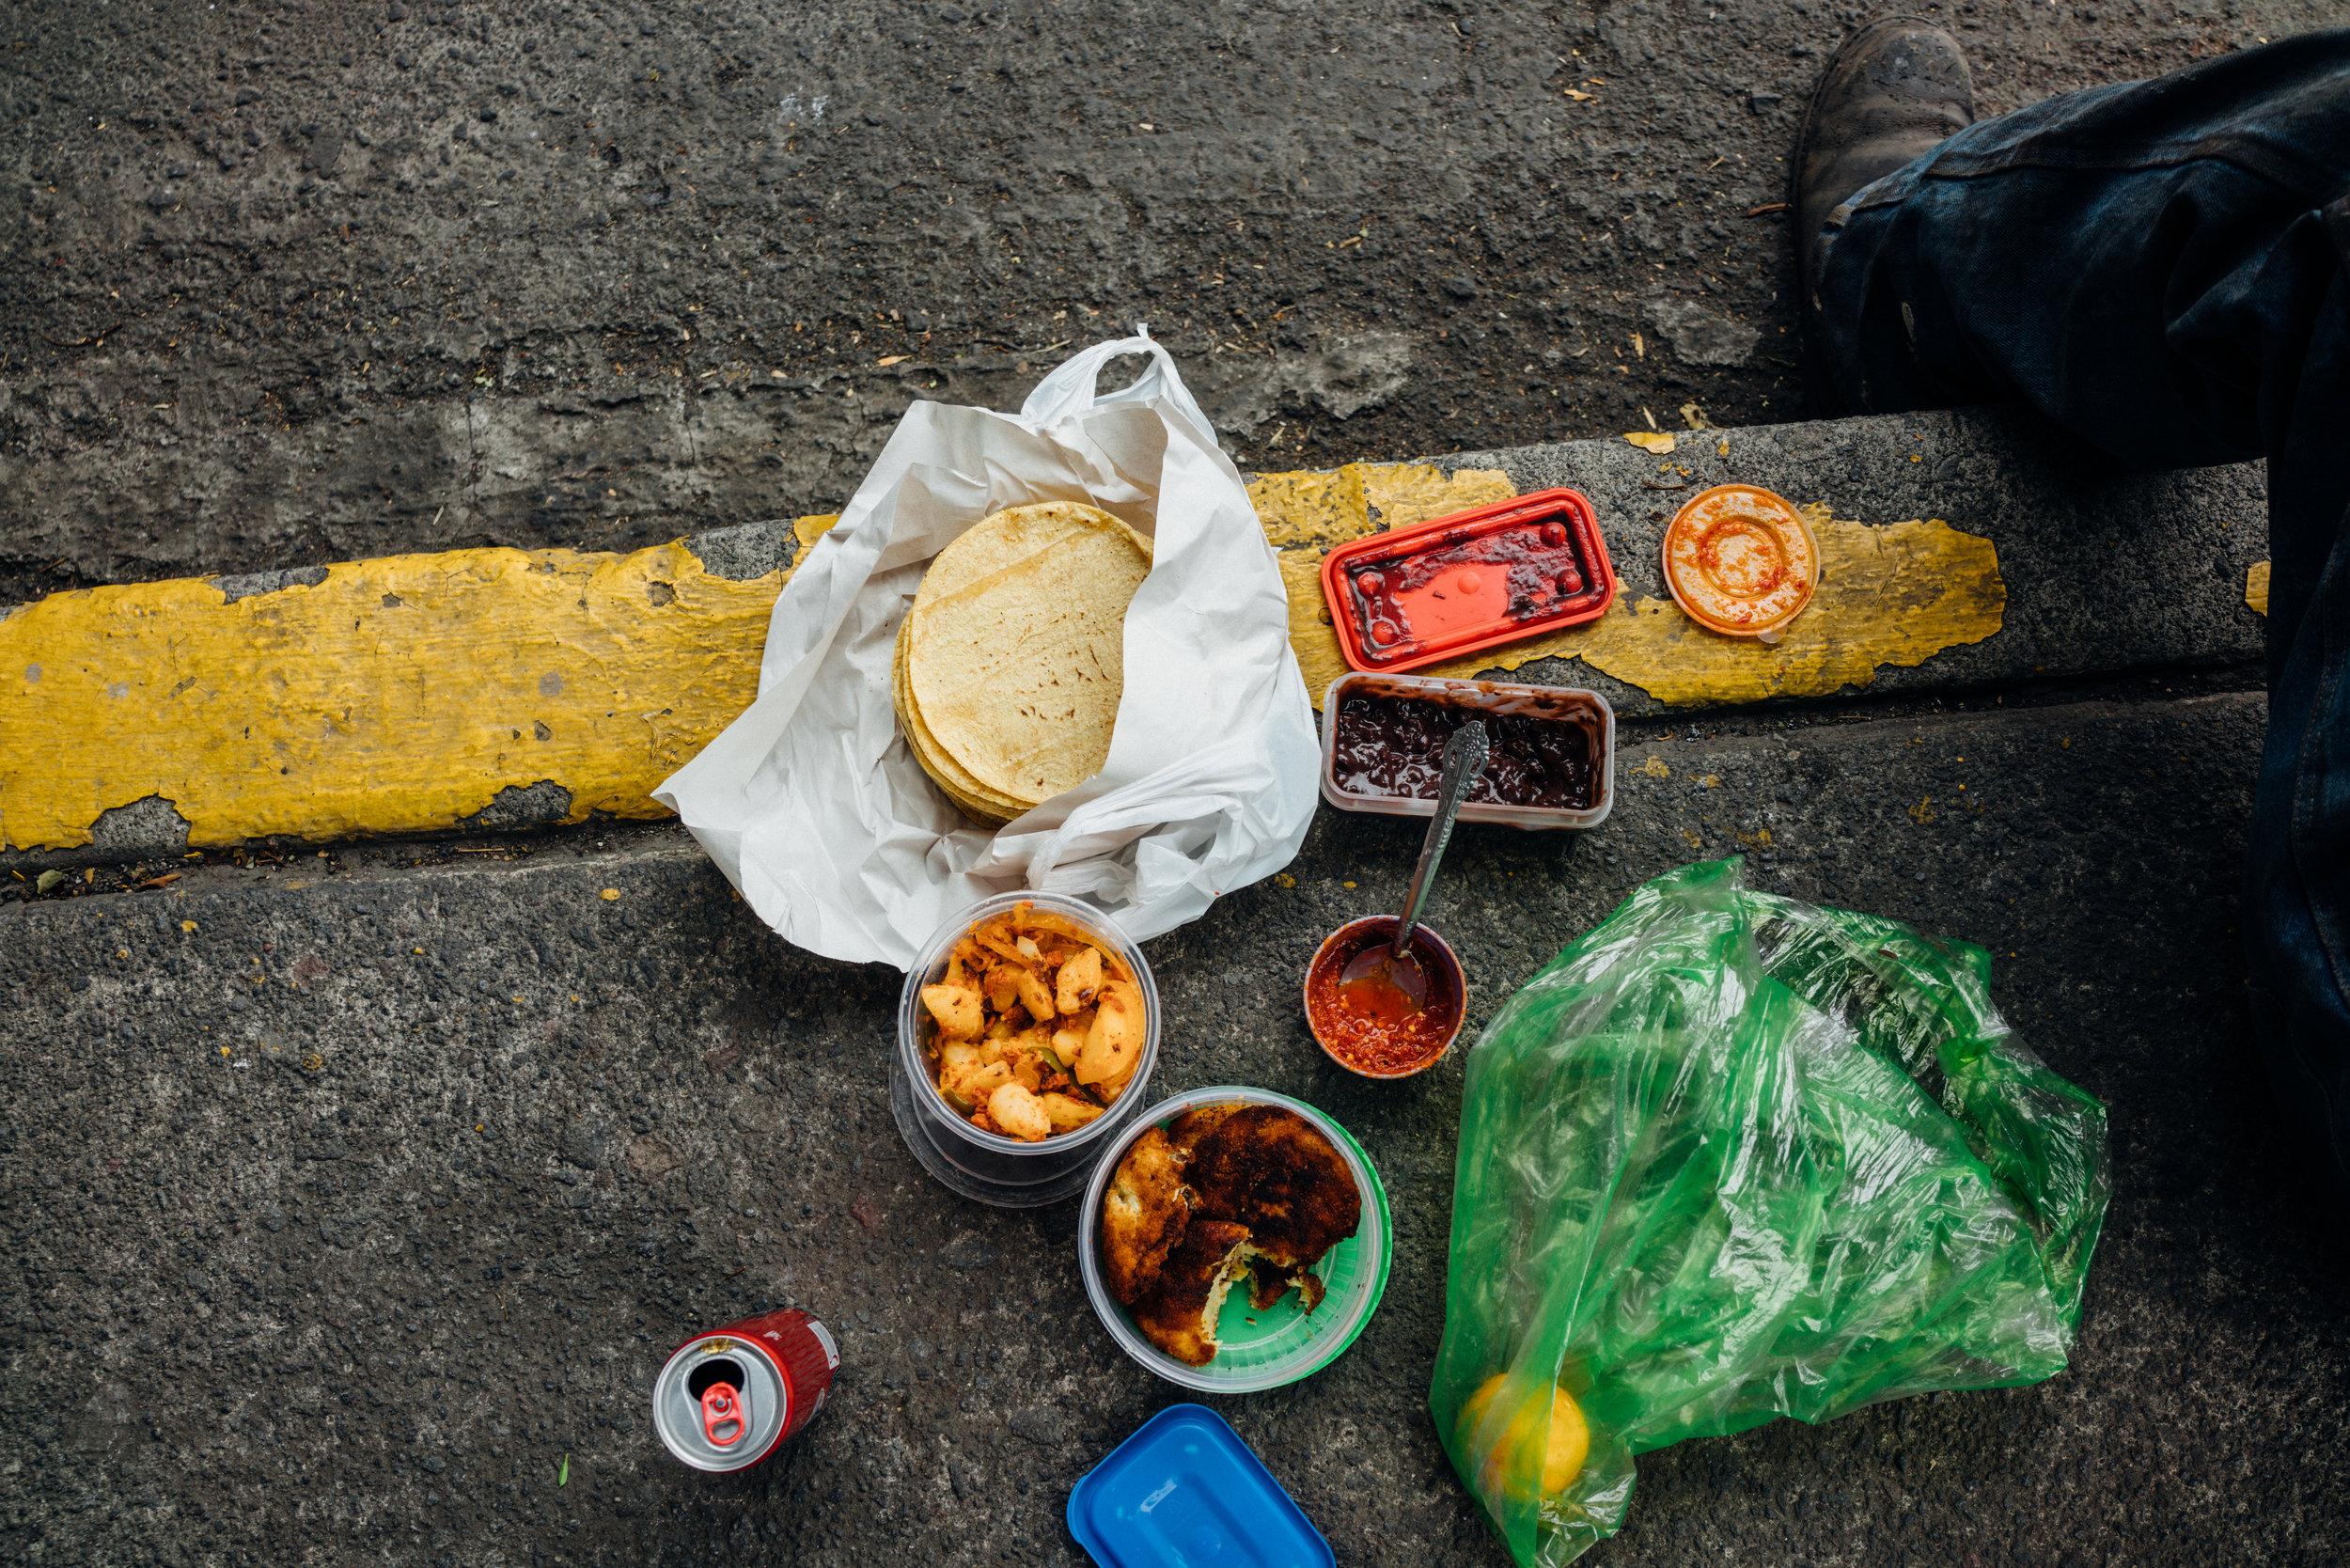 A worker's delicious lunch, on the sidewalk